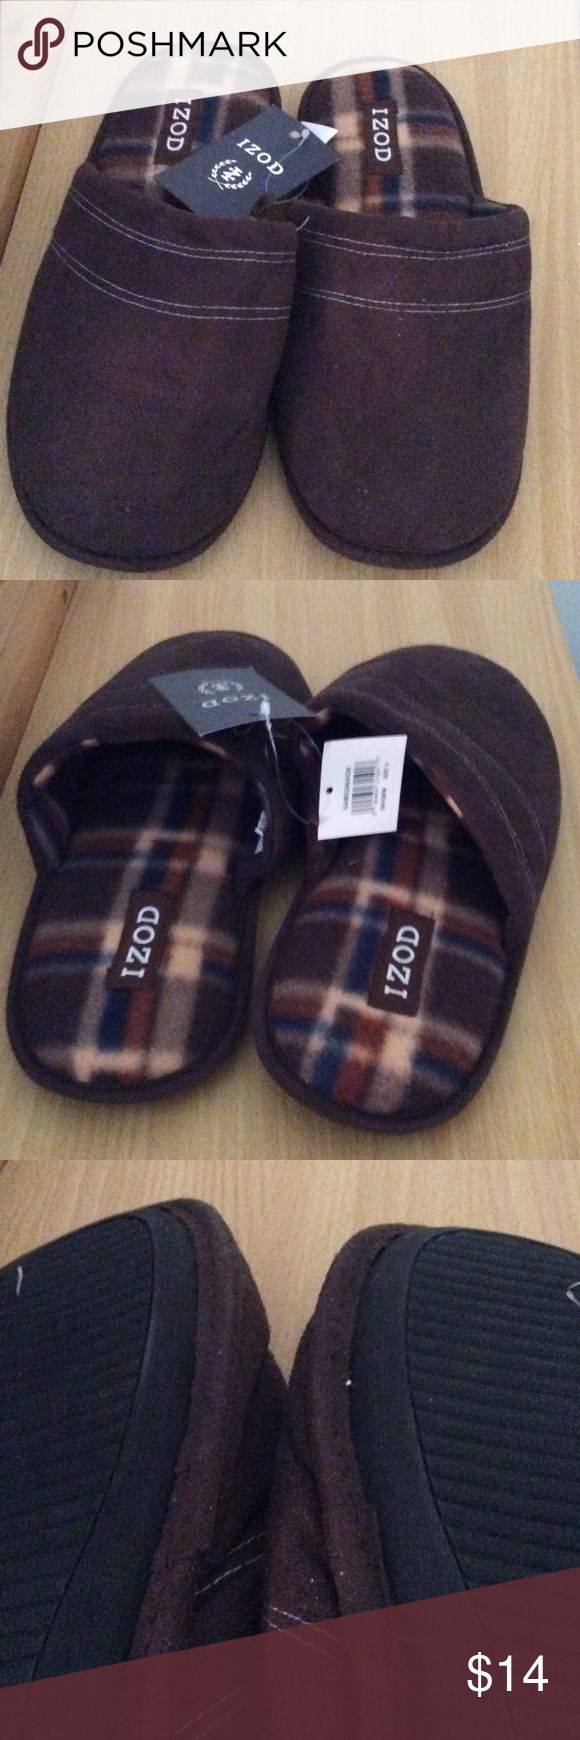 New ' Izod Men's  Slippers size 9 New with tag brown Slippers with plaid  livening, very soft and durable sole. Izod Men's size 9 Shoes Loafers & Slip-Ons